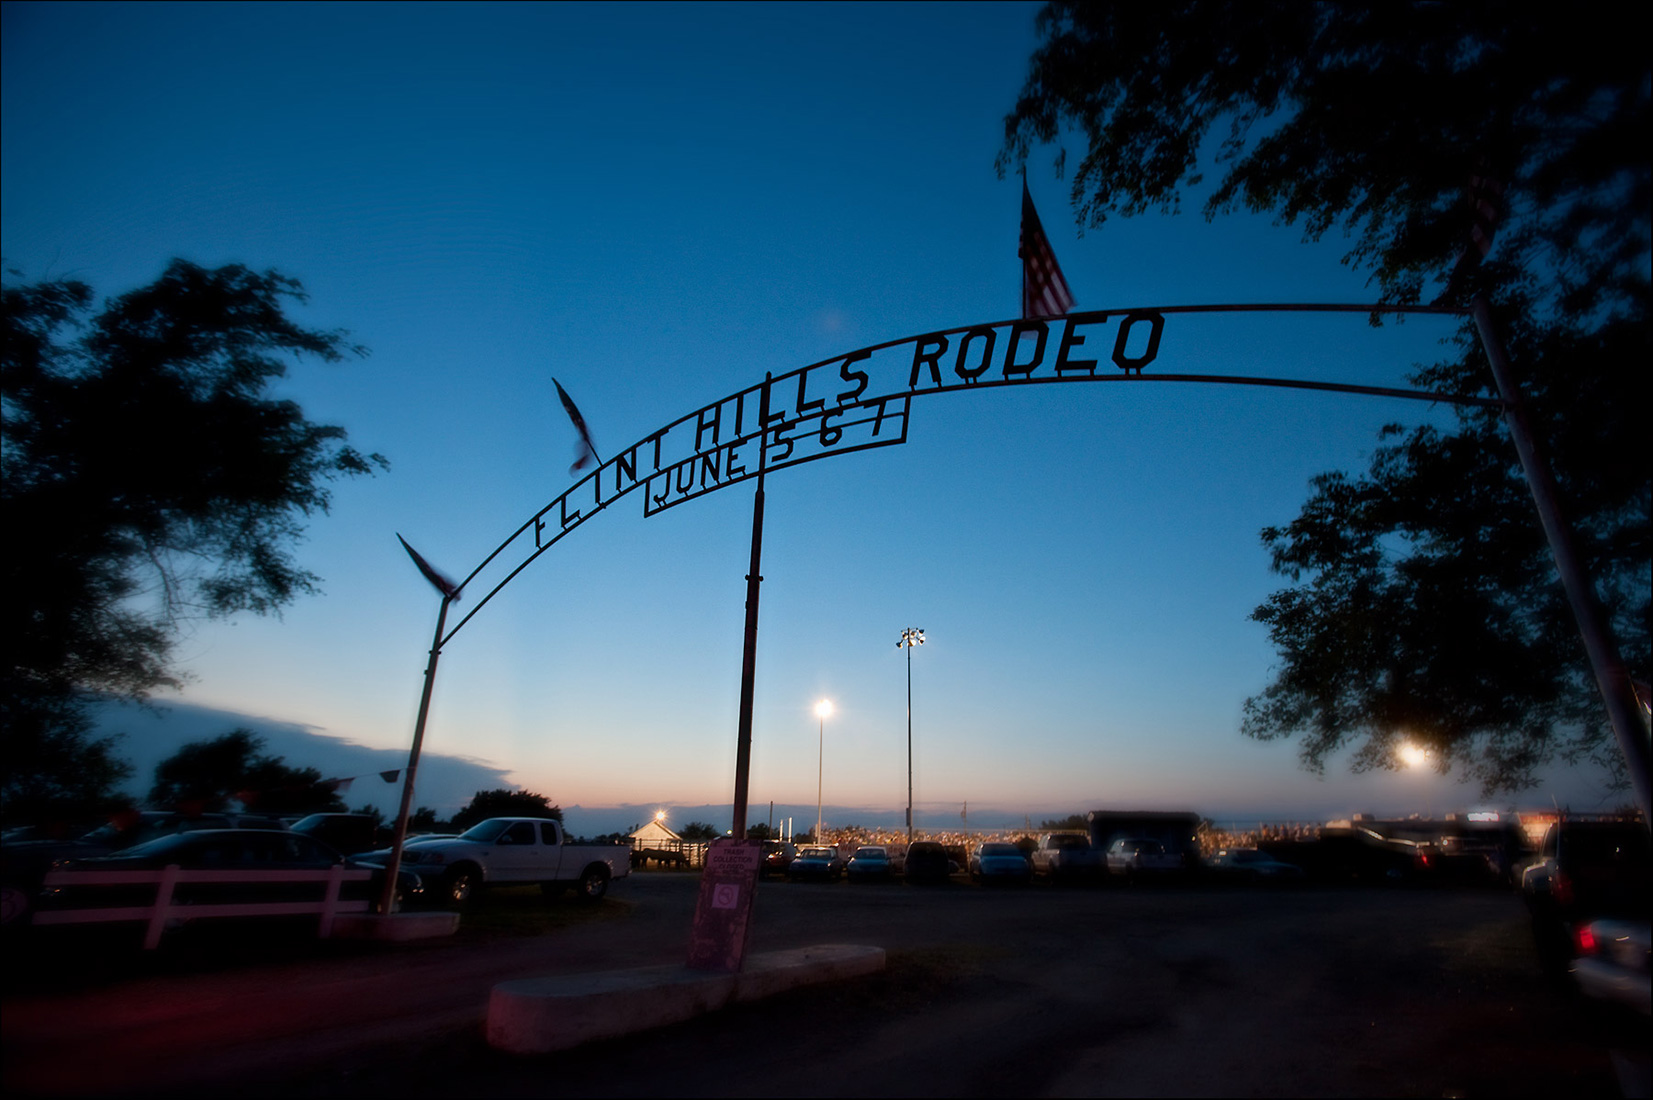 090606_rodeo_0725